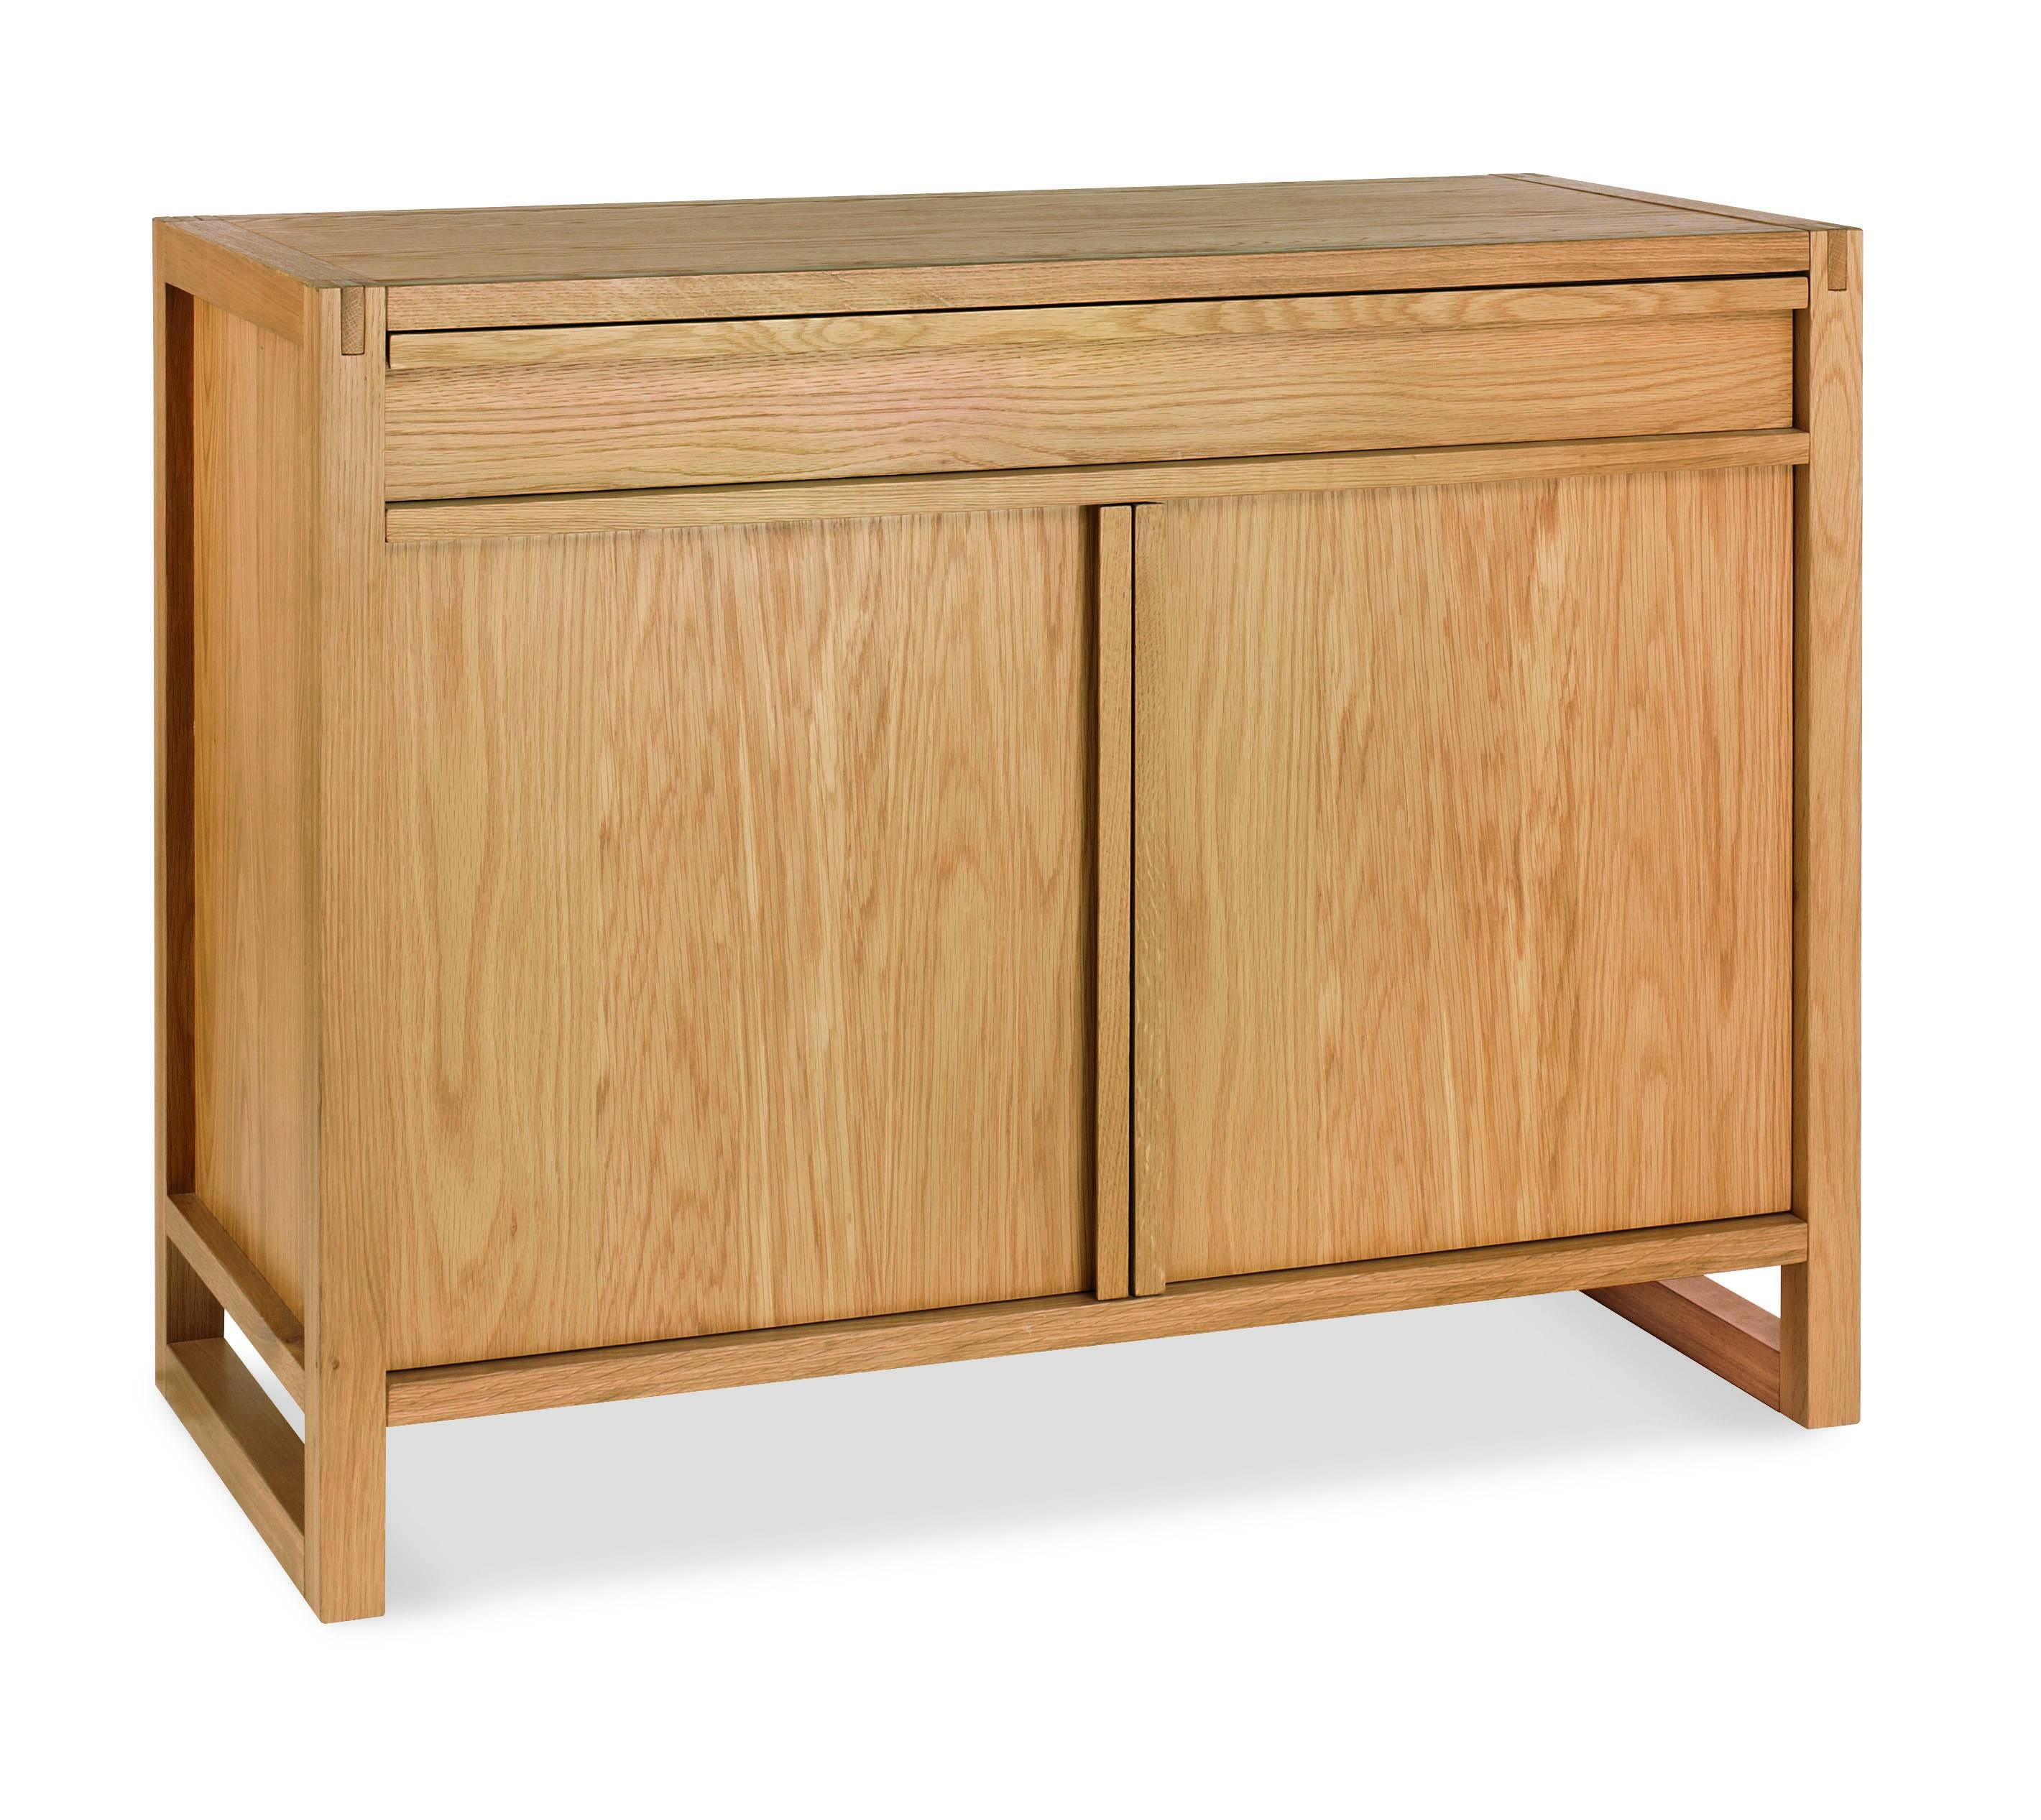 Studio Oak Narrow Sideboard With Keyboard Drawer With Regard To Narrow Sideboard (#19 of 20)